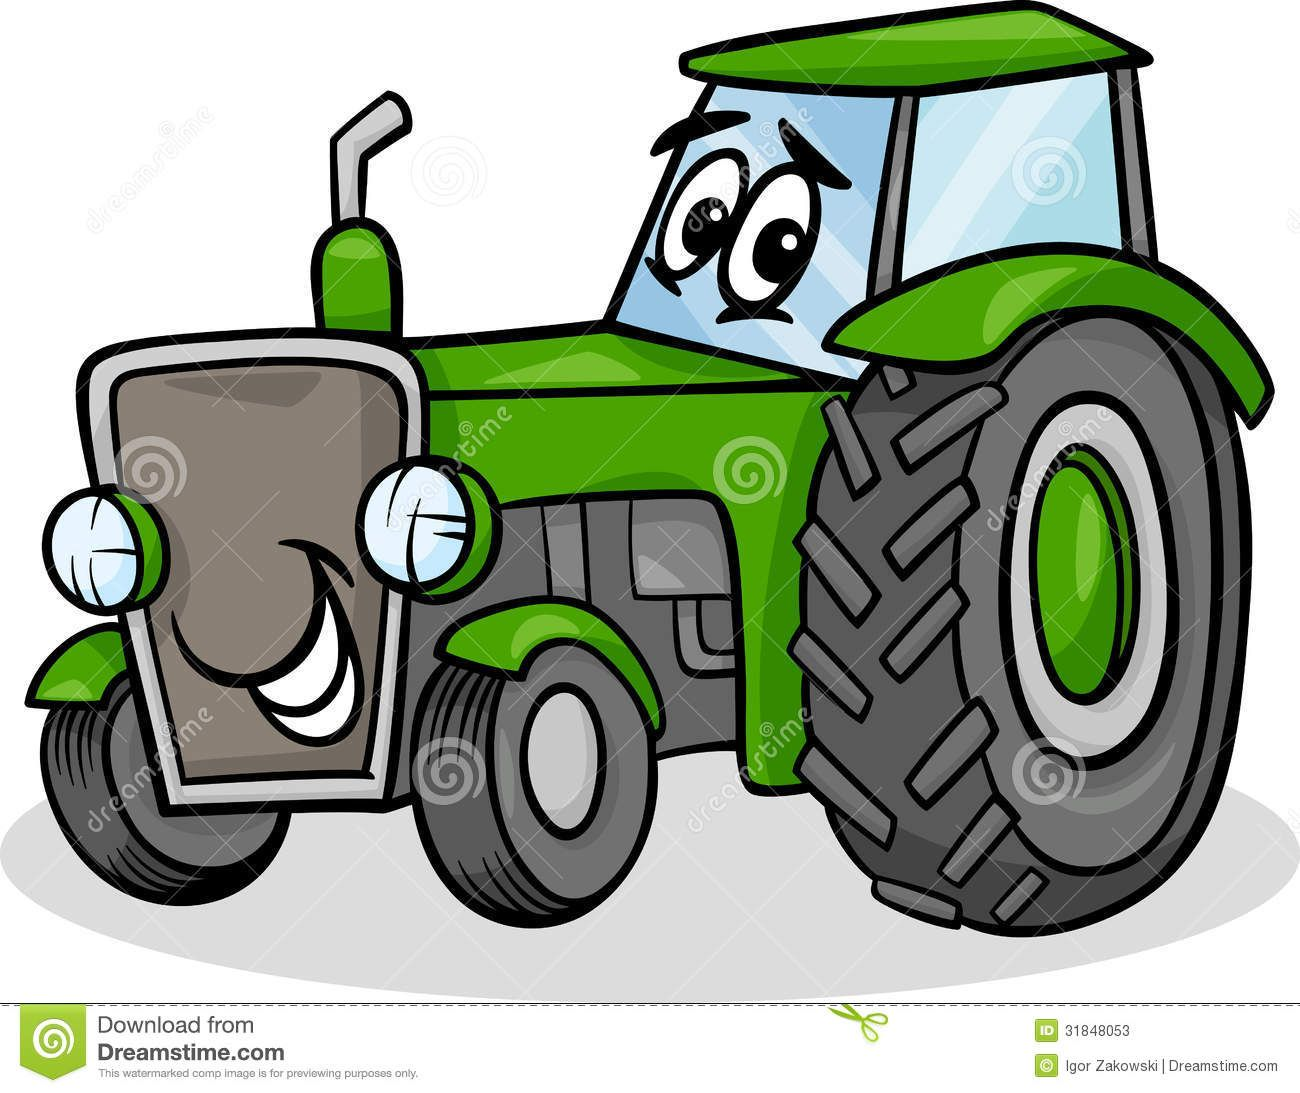 Cartoon Tractor | Cartoon Illustration of Funny Farm Tractor Vehicle ...